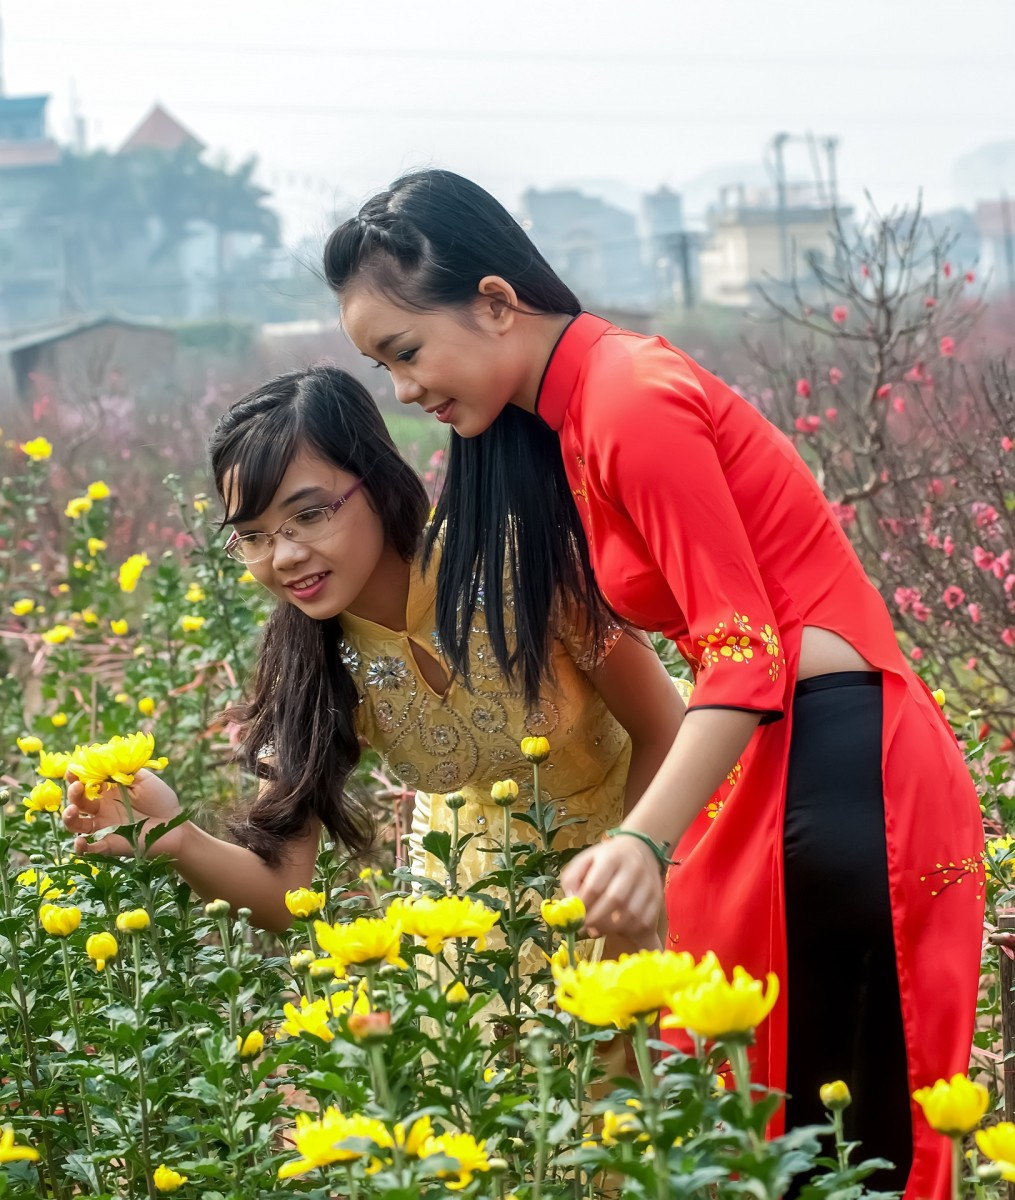 Gardening helps to promote social interaction, which reduces feelings of loneliness and isolation.